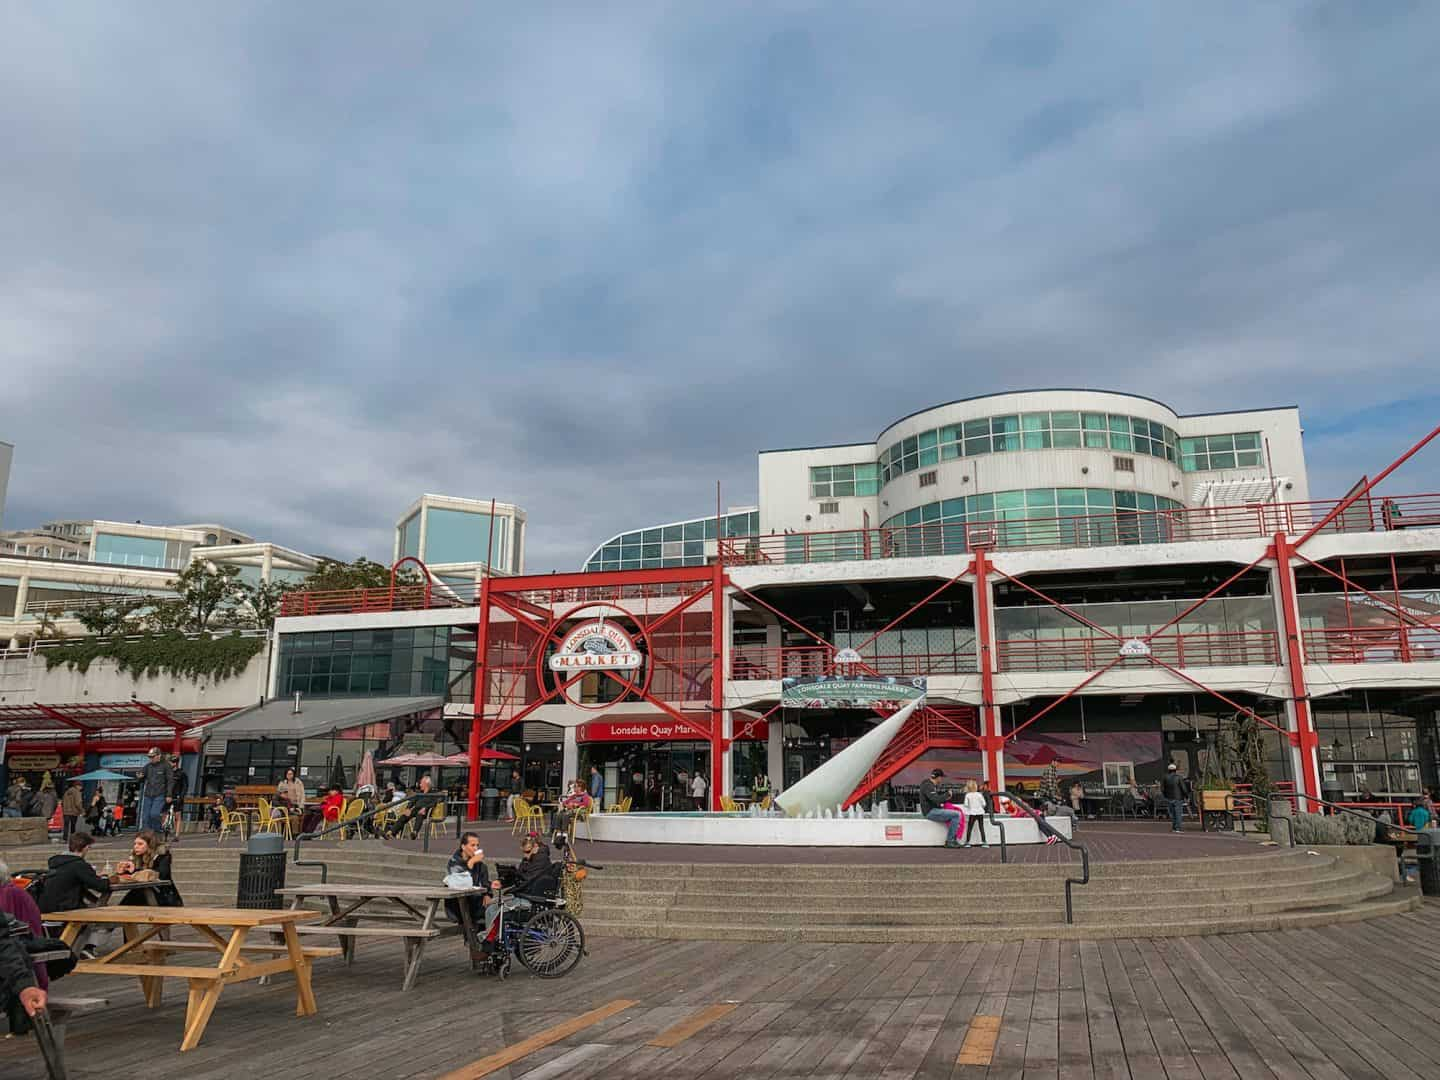 Lonsdale Quay Market in Vancouver